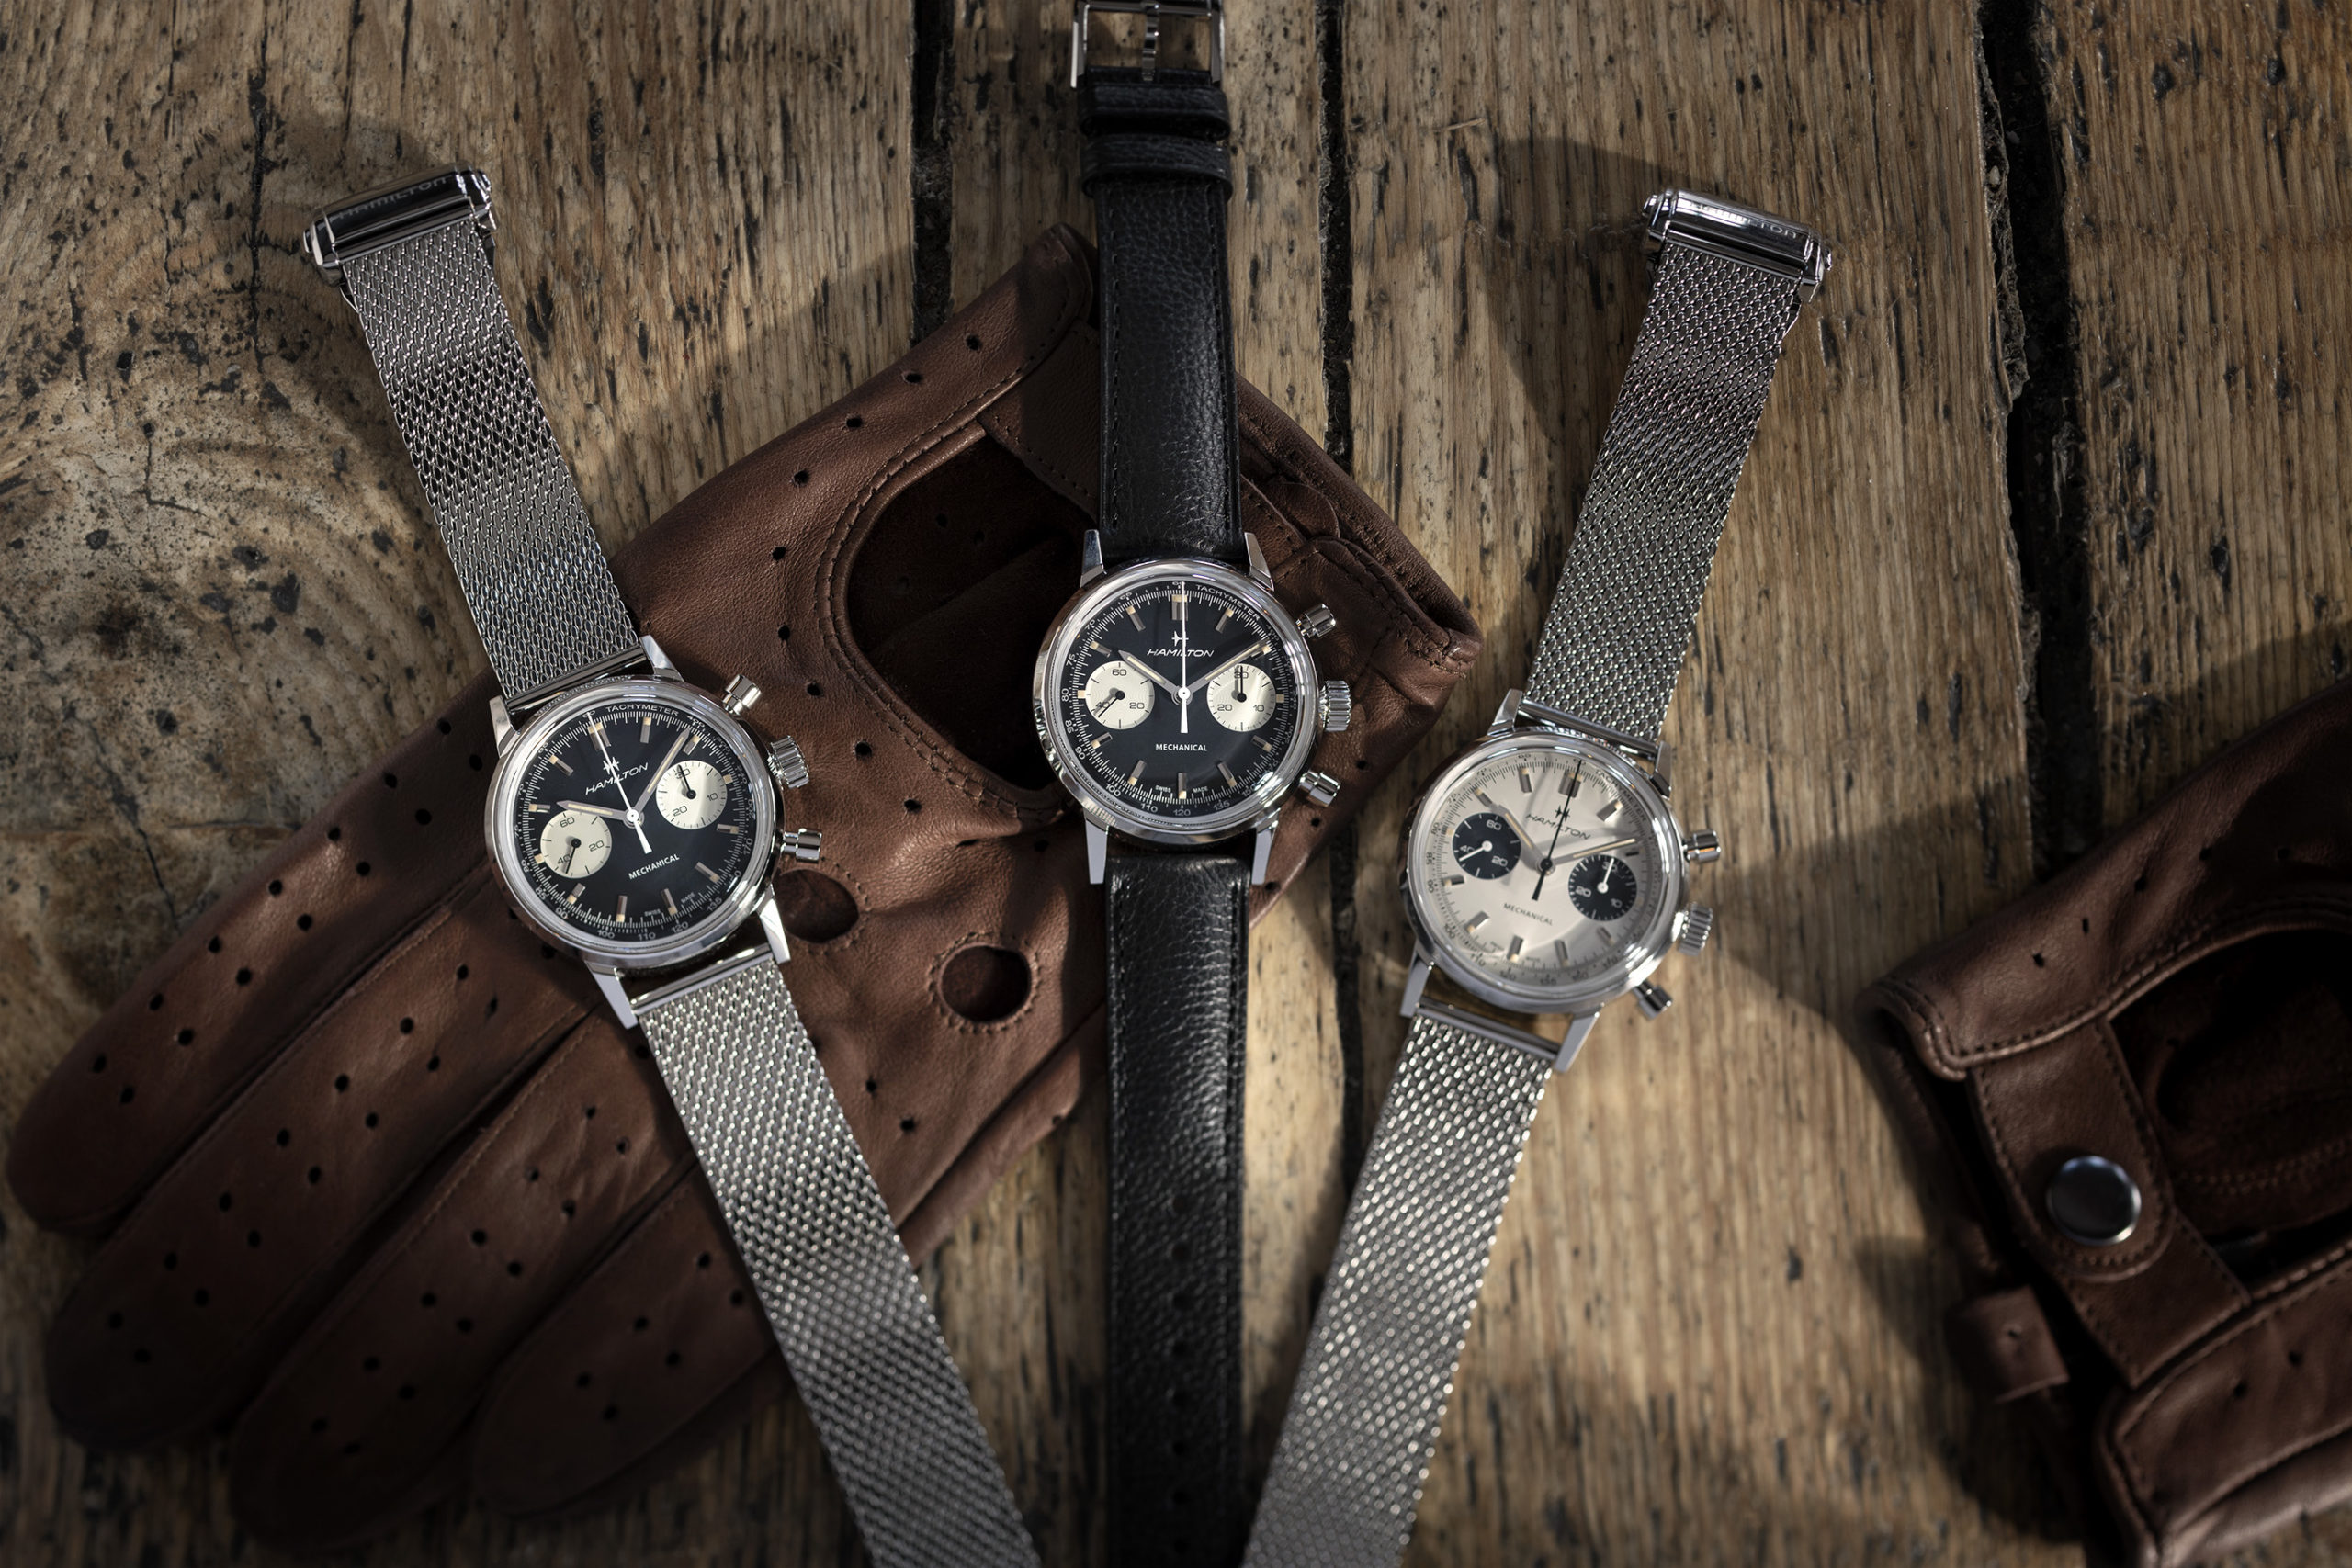 What You Need To Know About The Hamilton Intra-Matic Chronograph H